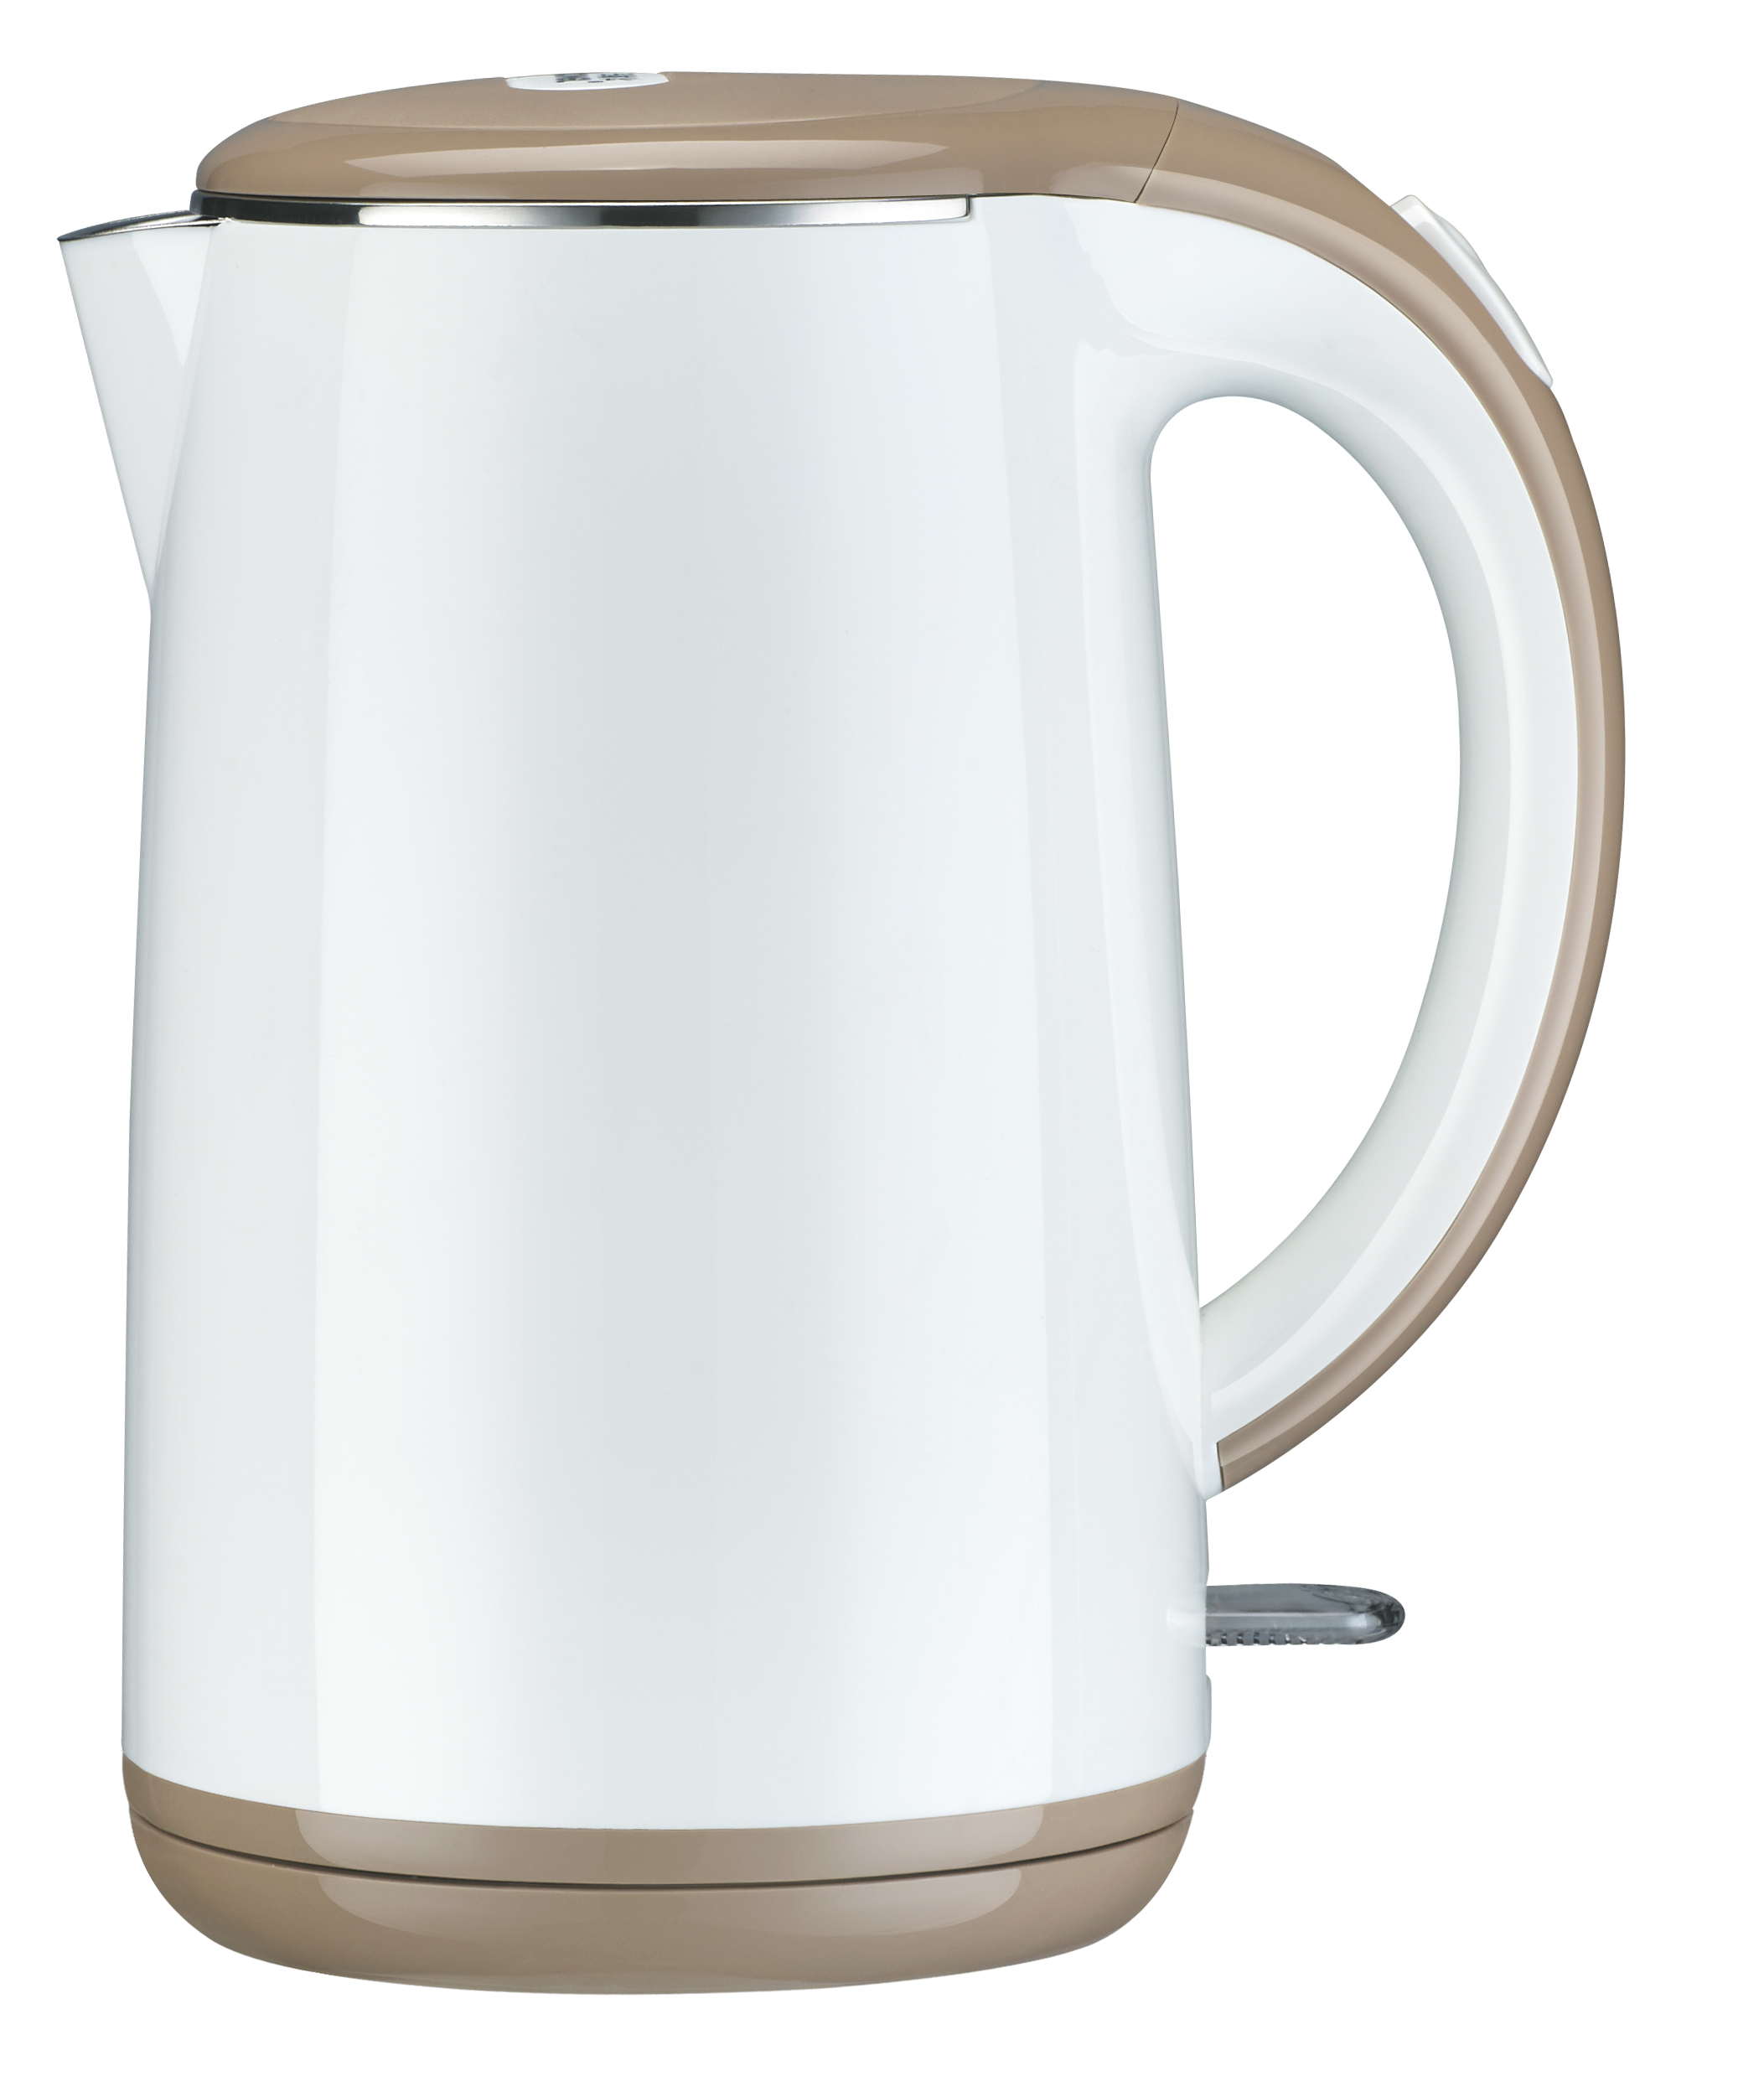 Stainless steel Electric tea kettle HB-3227